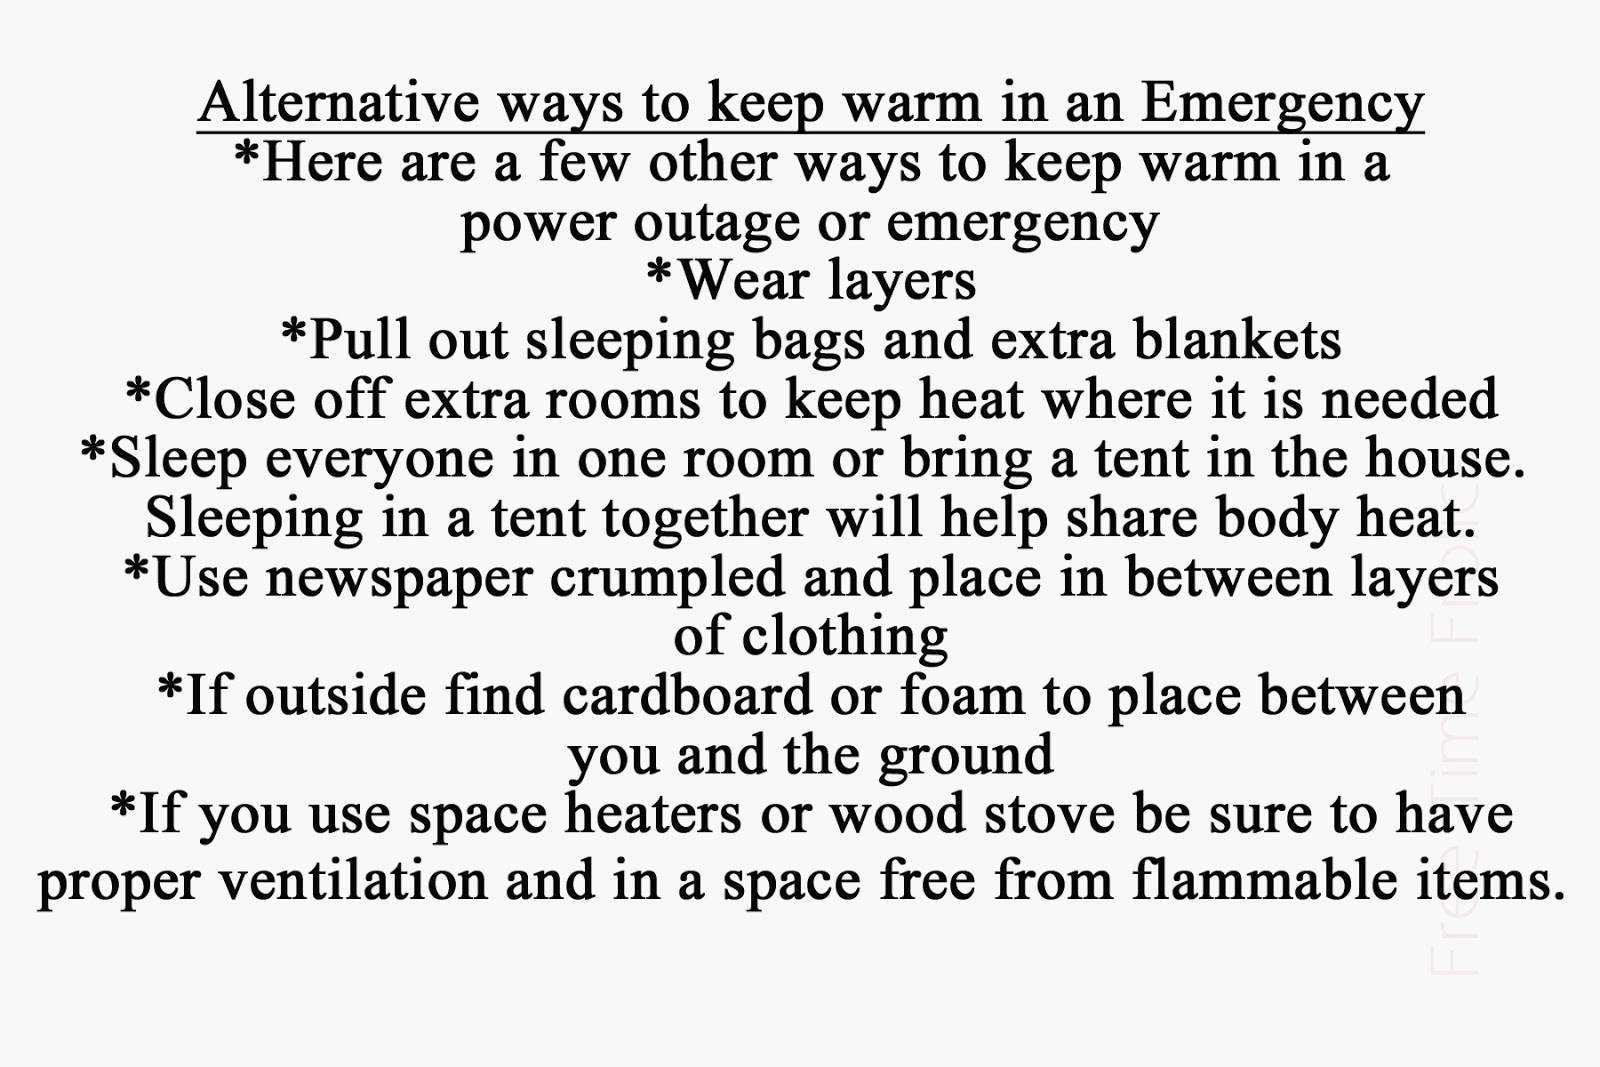 www.freetimefrolics.com Alternative ways to keep warm in an emergency or power outage #preparedness